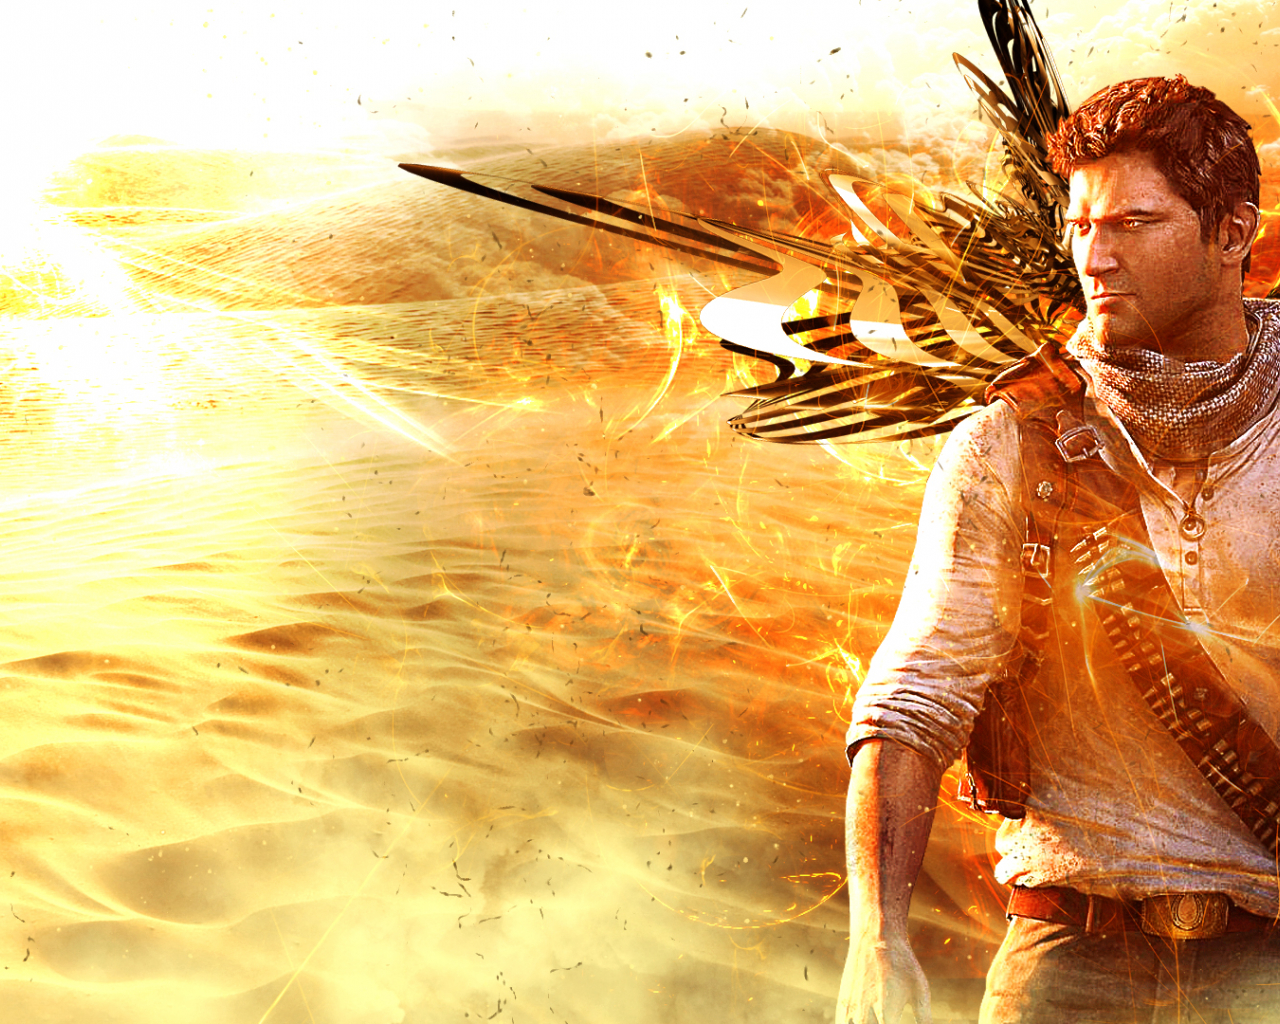 Free Download Uncharted Wallpaper Iphone Wallpaper 1920x1080 For